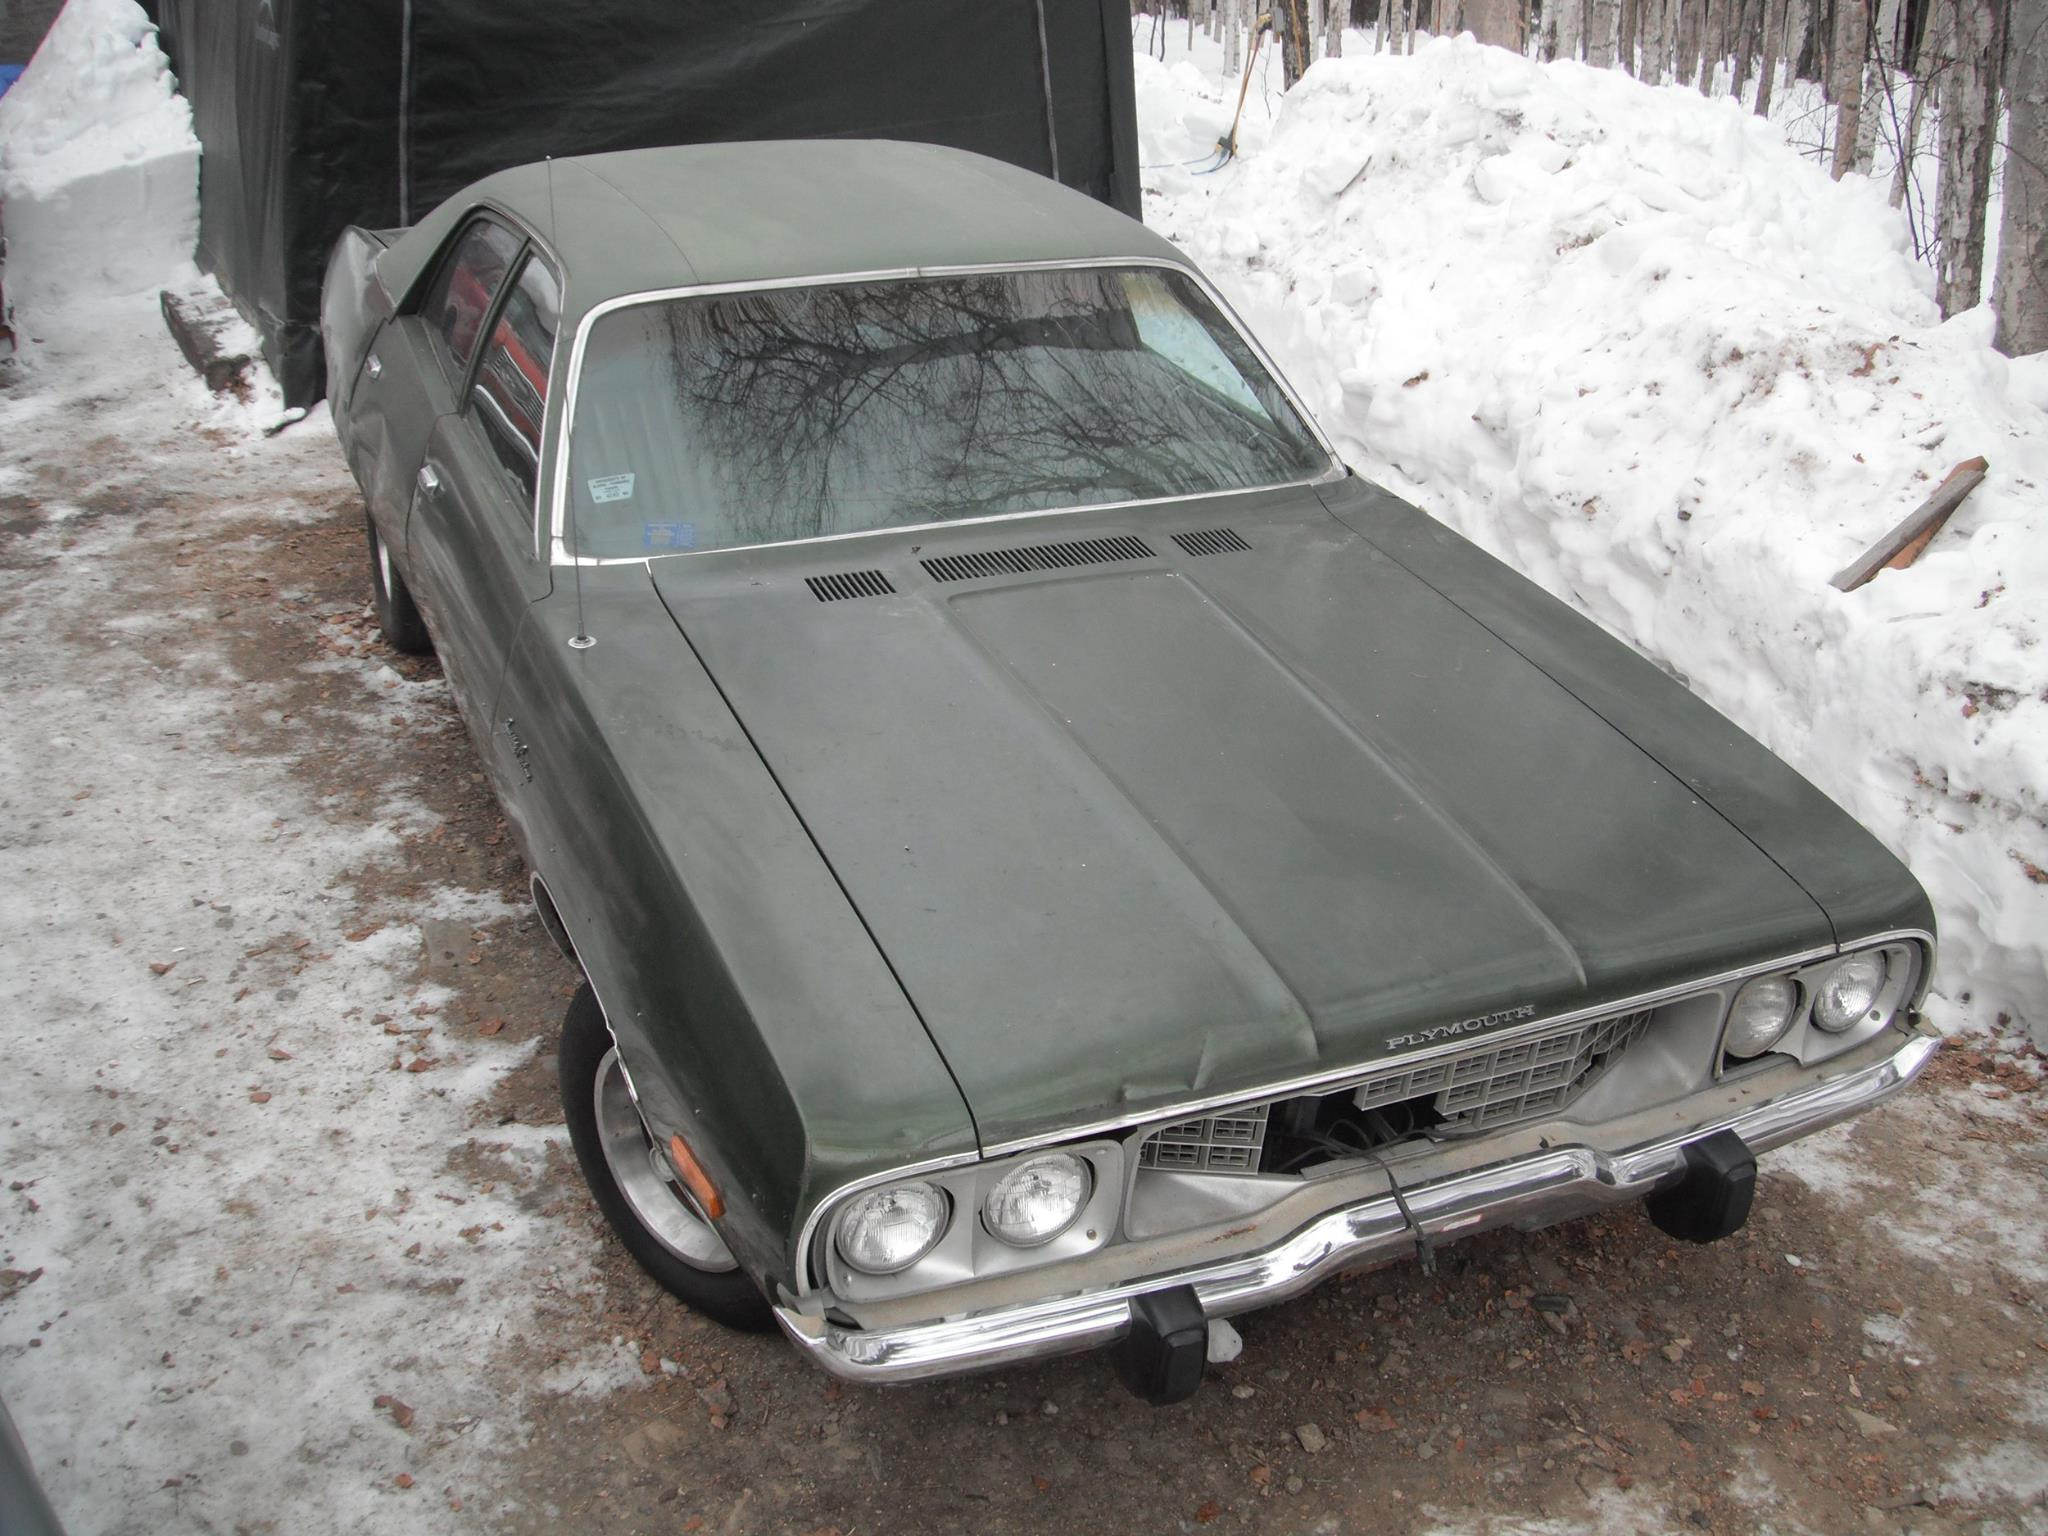 CC Outtake 1971 Plymouth Satellite – Poetry In The Parking Lot